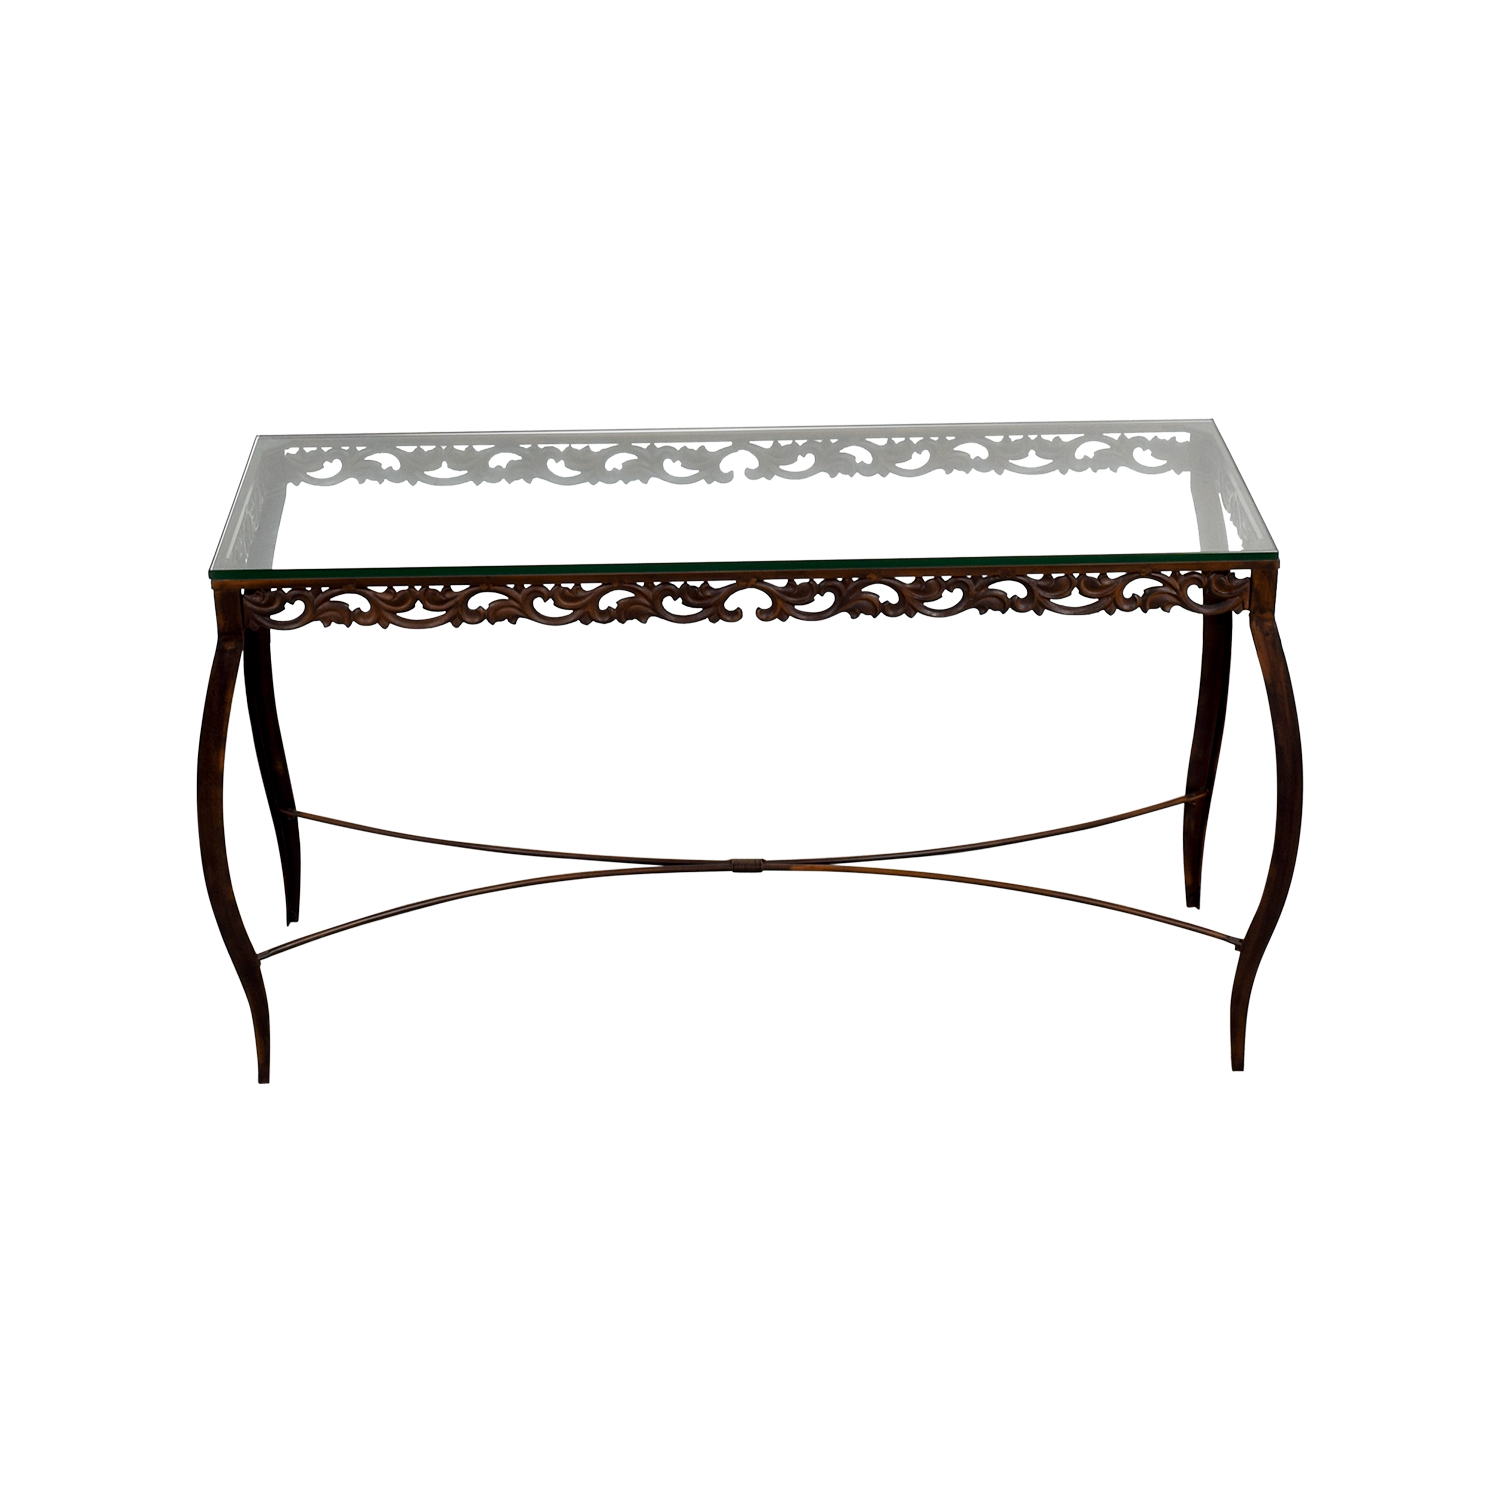 shop Pier 1 Imports Pier 1 Imports Glass Console Table online